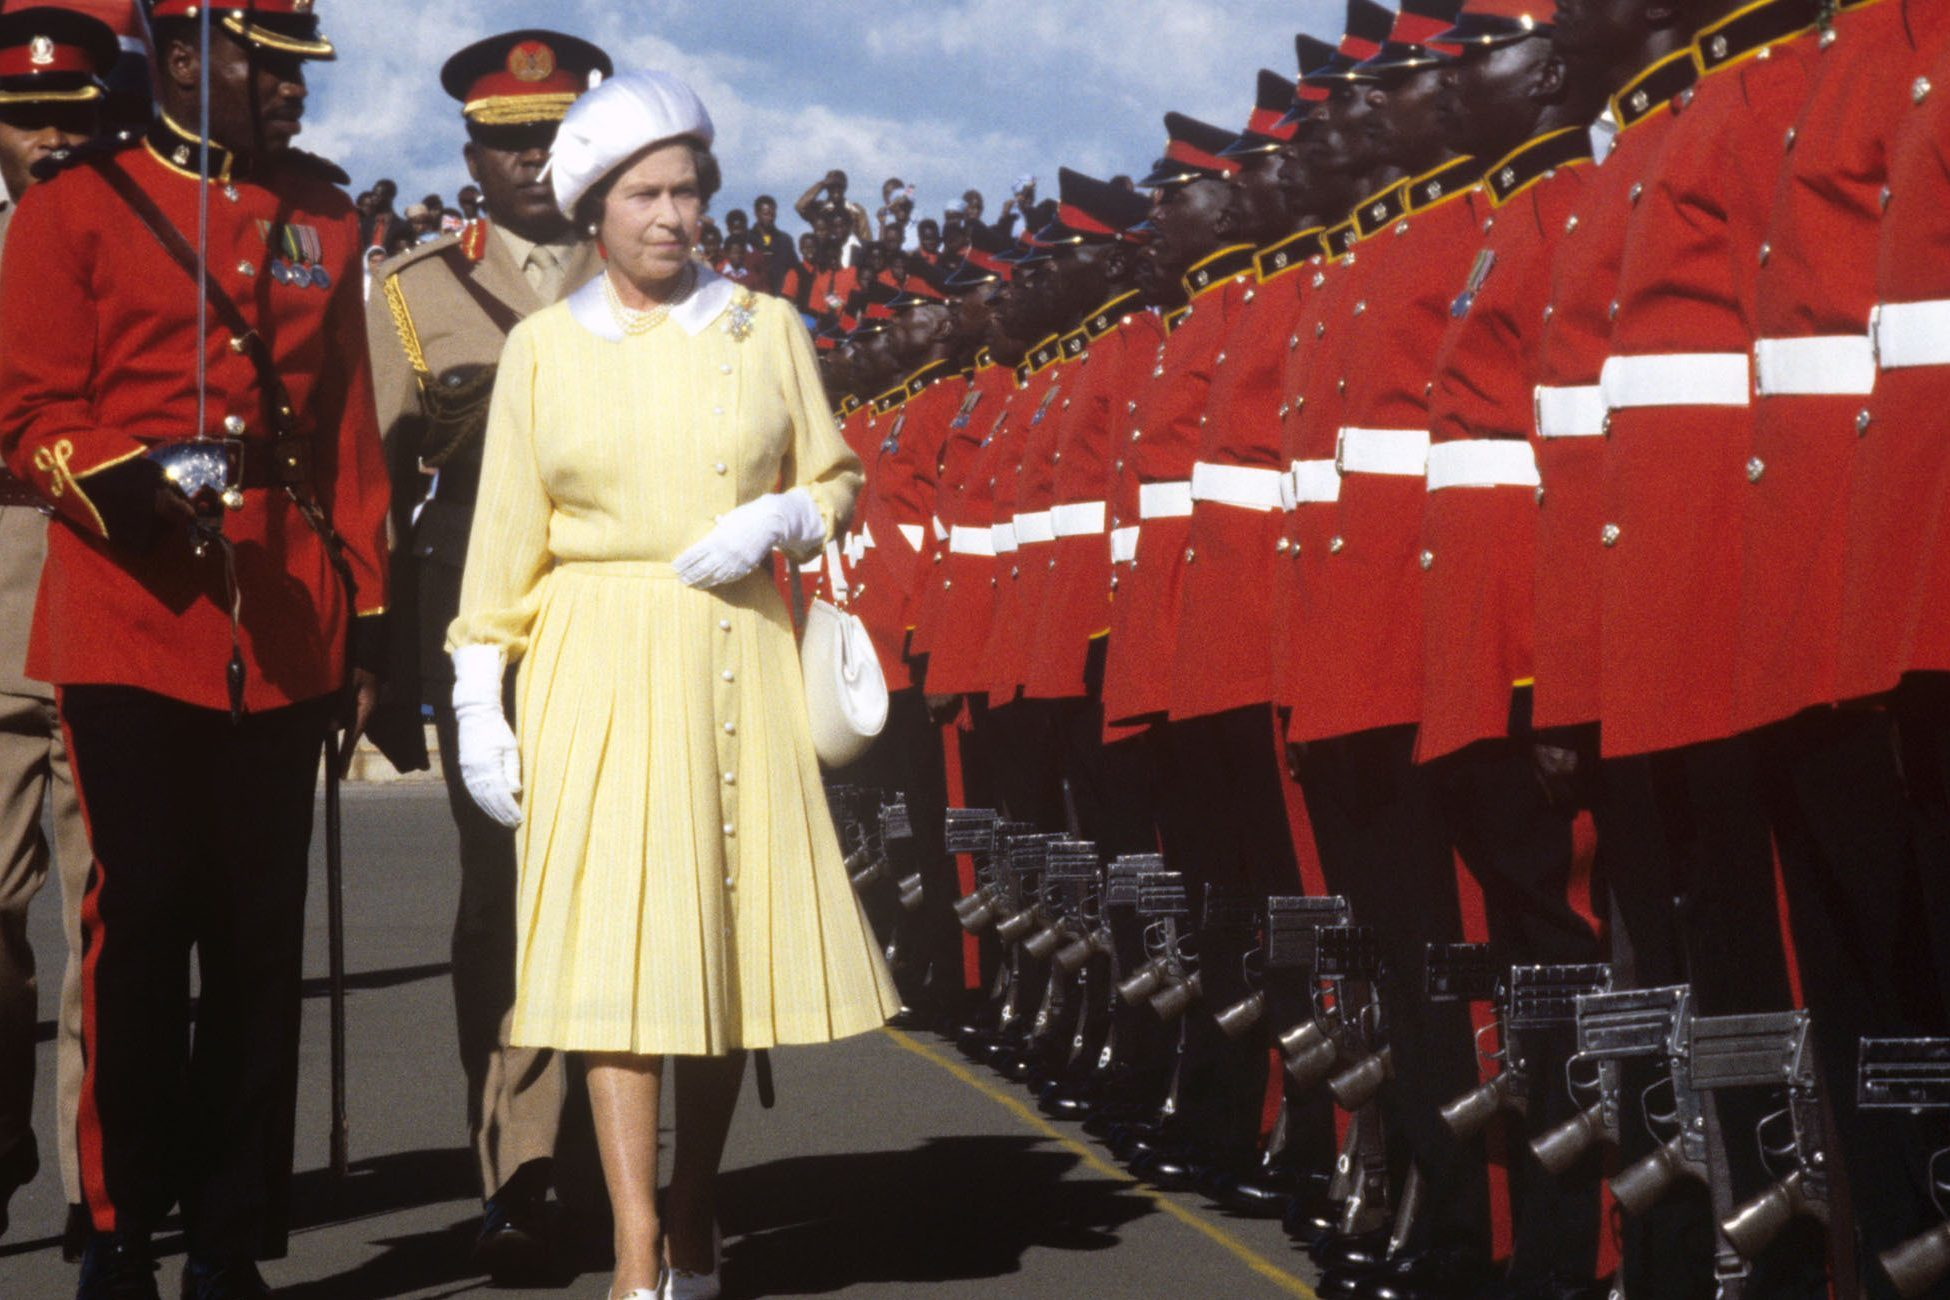 Queen Elizabeth II inspecting a Guard of Honour in 1983, when the speech was originally written (Ron Bell/PA Wire)